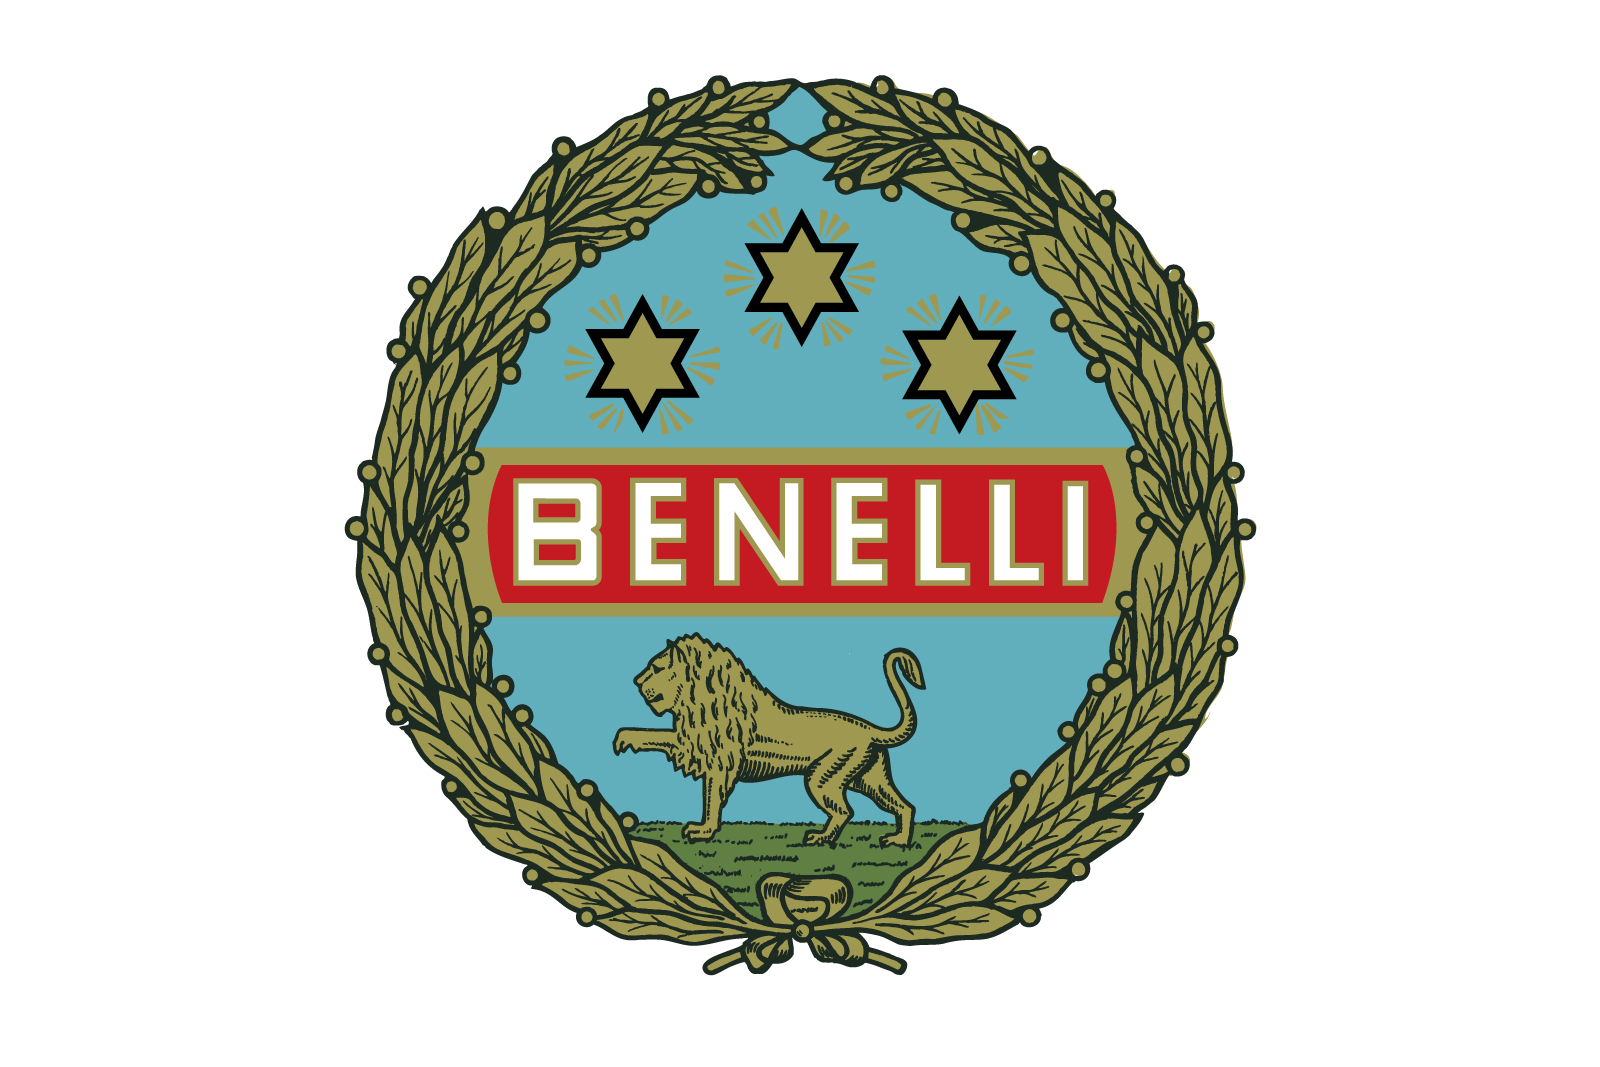 Benelli in pillole